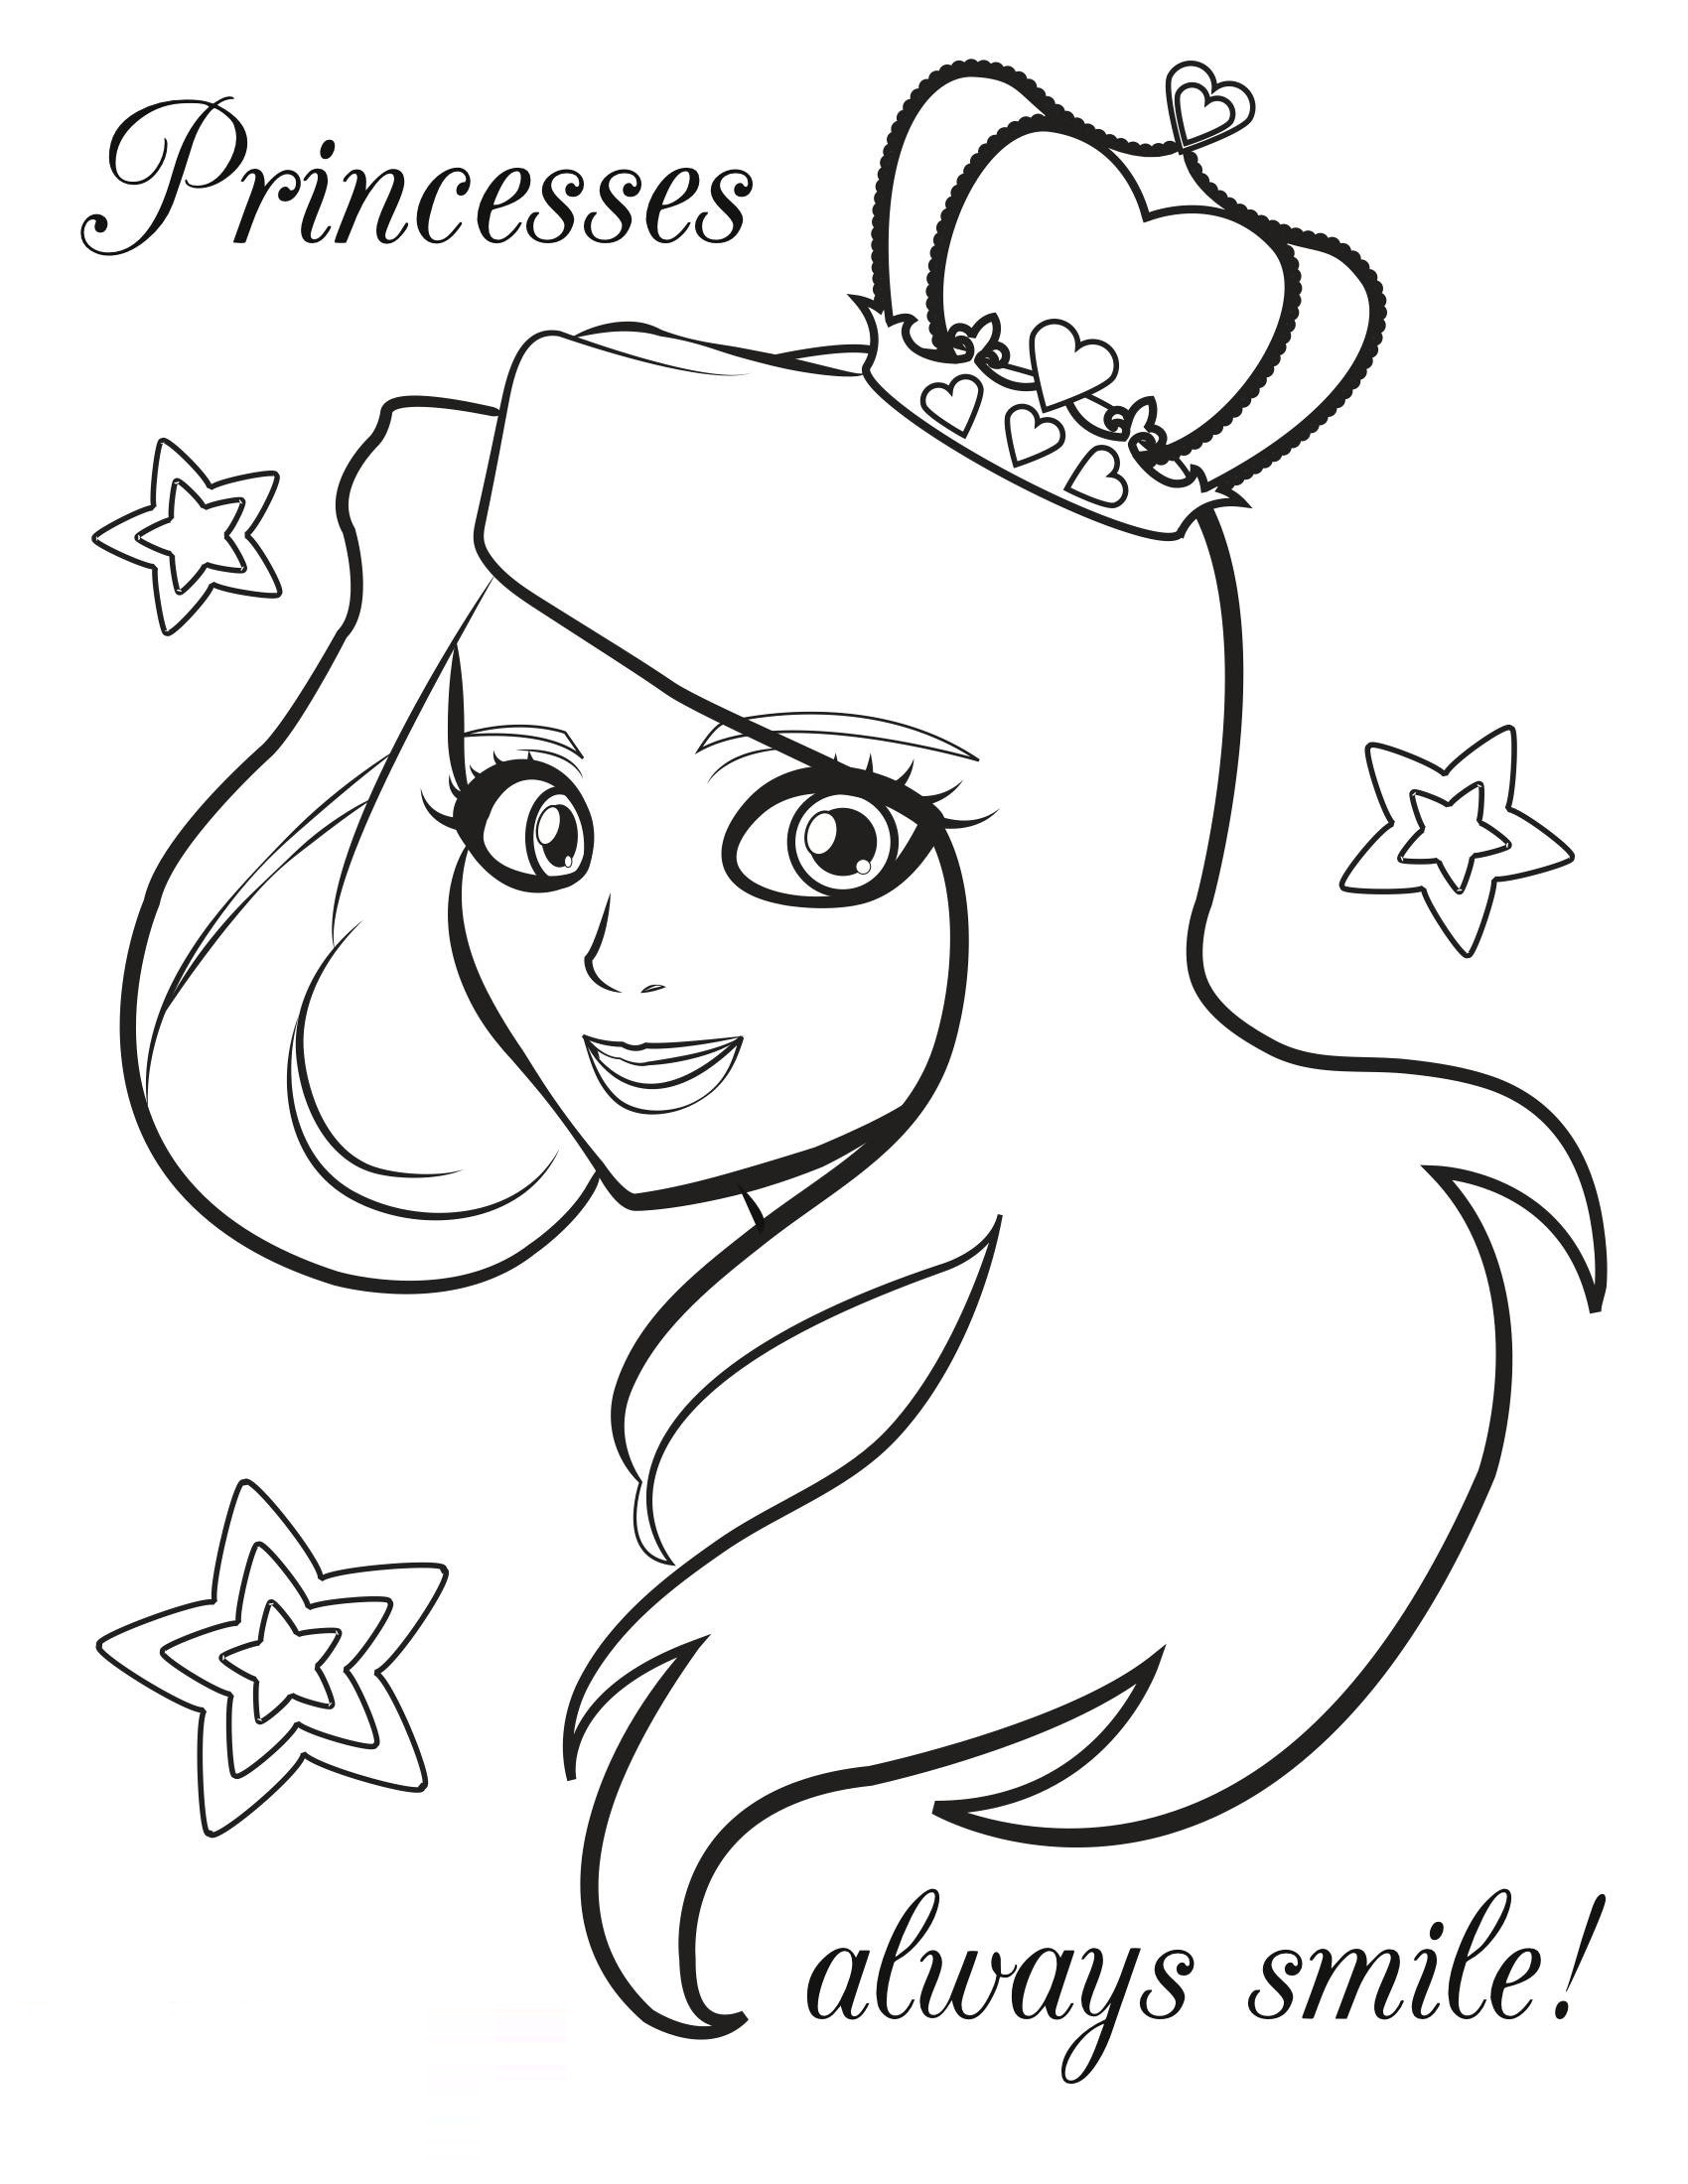 Free Coloring Book Pages for Kids Princess